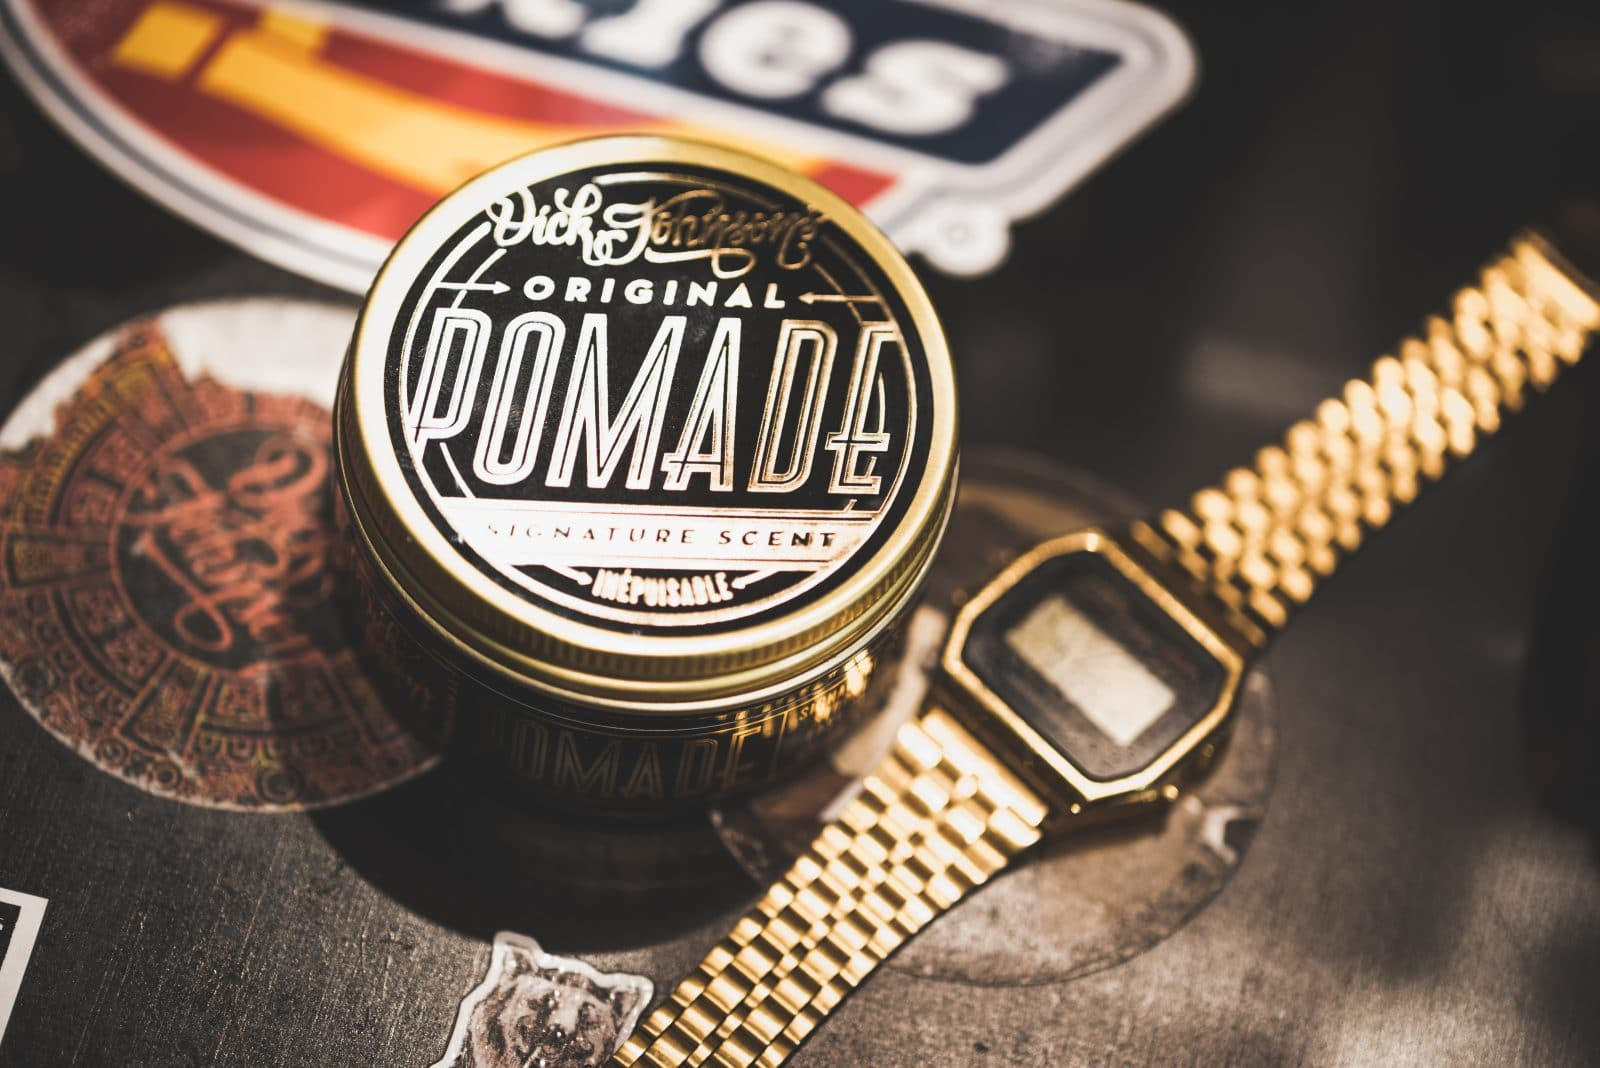 Dick Johnson Pomade Inepuisable | Beard Oil | Hair | Grooming | Shaving |  Gifts for Men